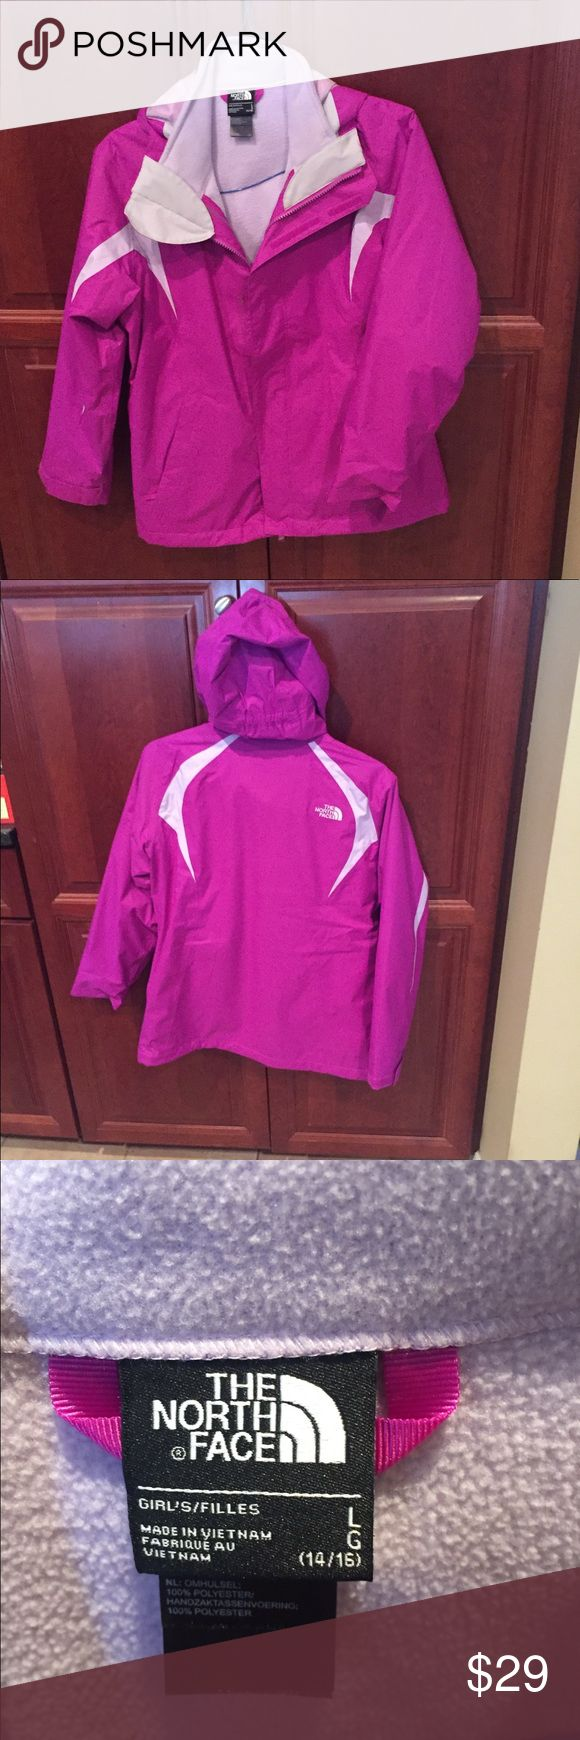 Northface winter jacket Girls jacket  Non smoking home Great condition Northface Jackets & Coats